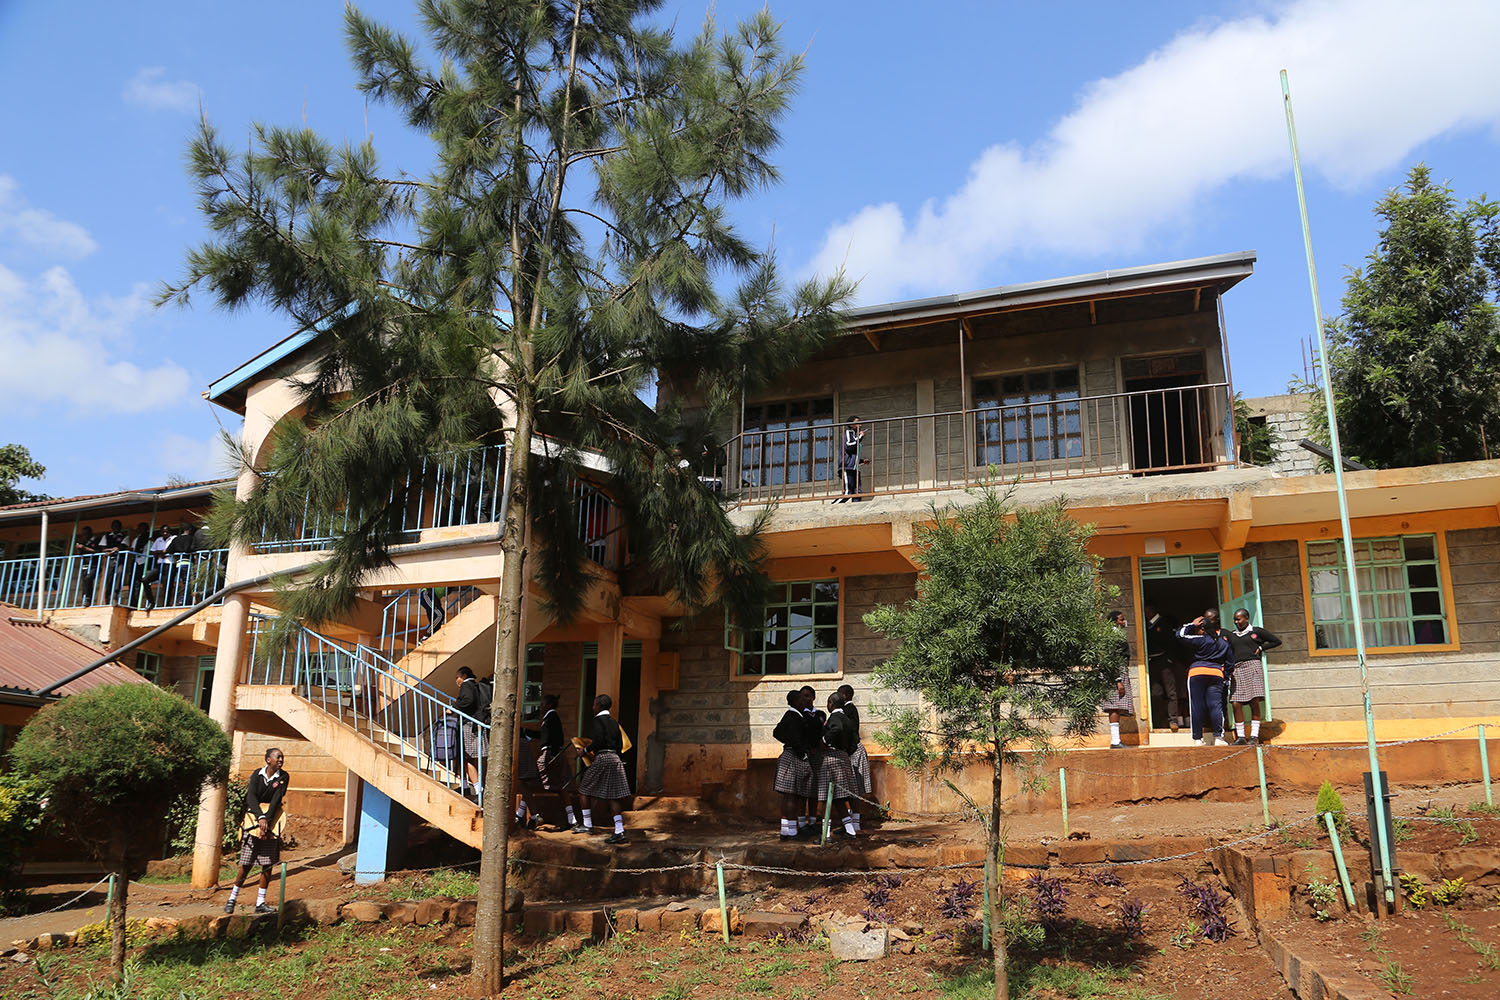 The Kenswed Academy is located outside of Nairobi in Kenya.